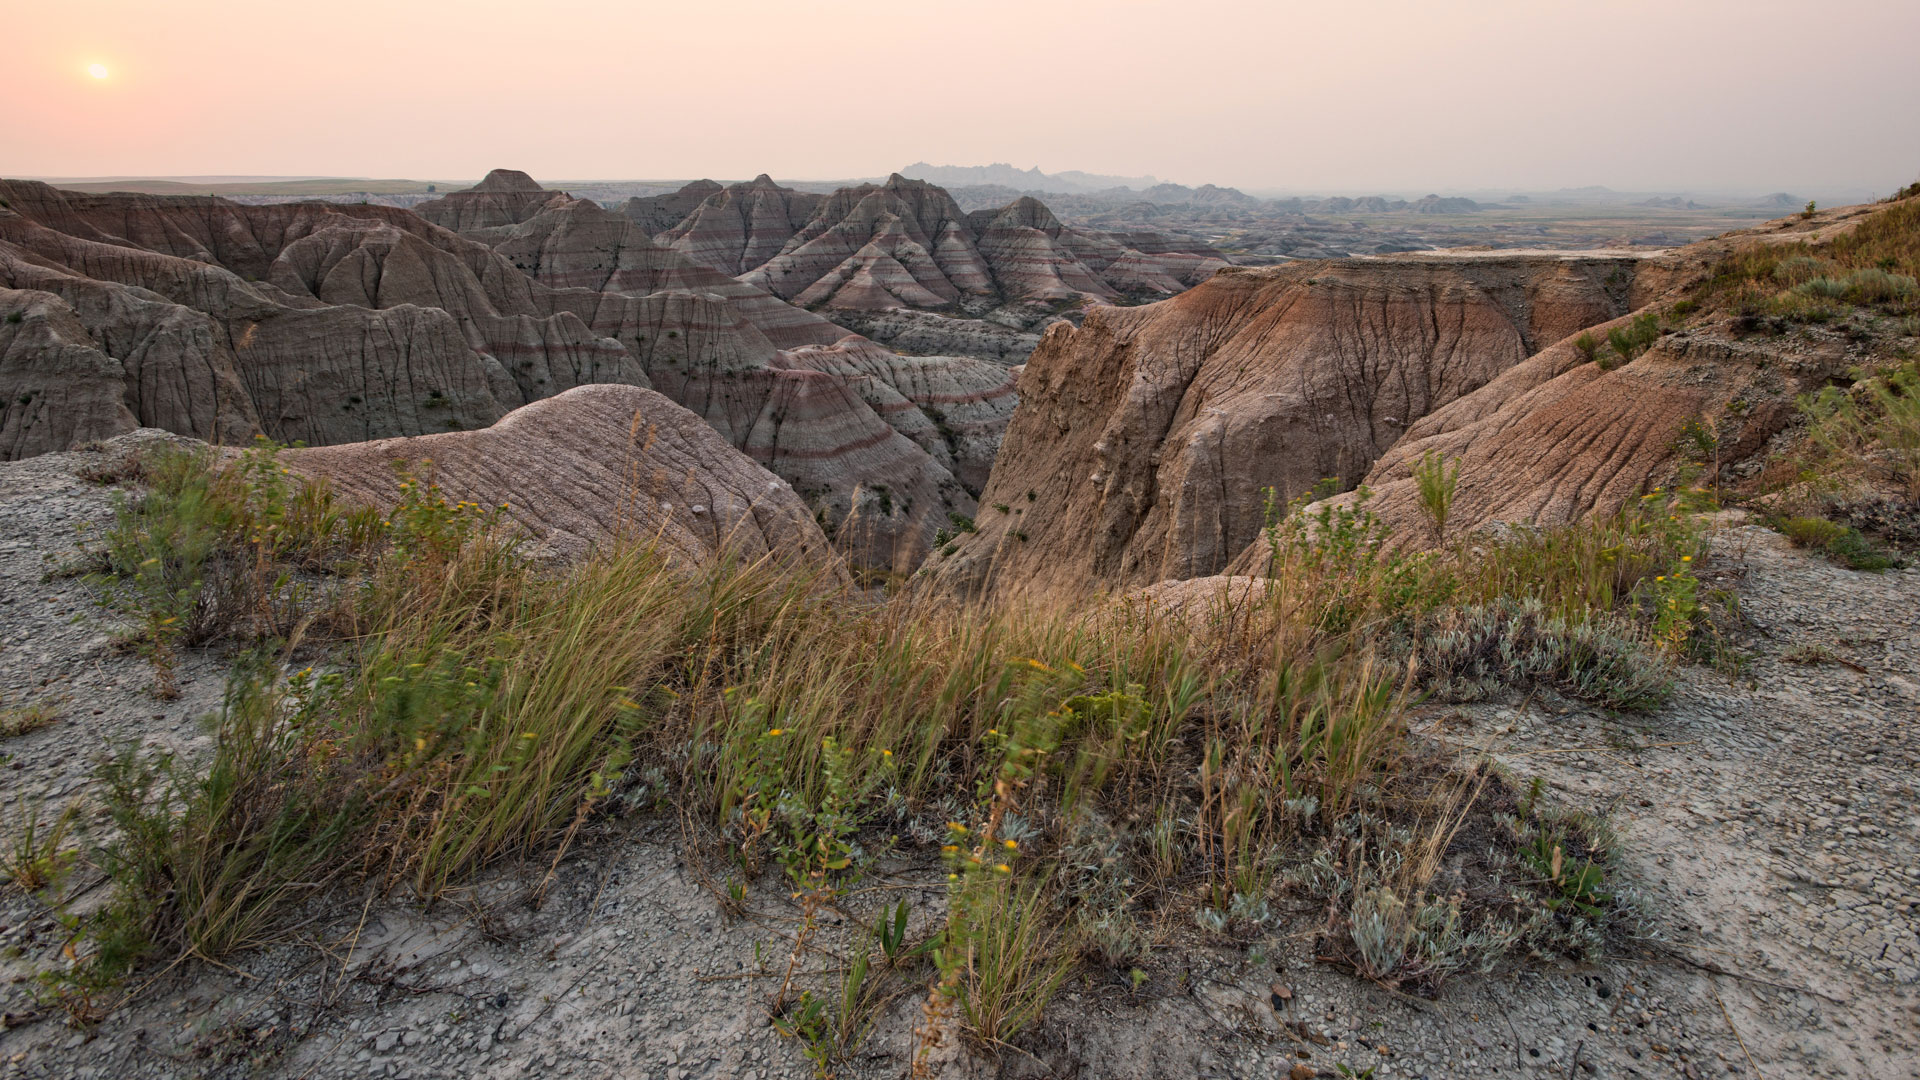 BadlandsNP_BJL2364-Edit.jpg